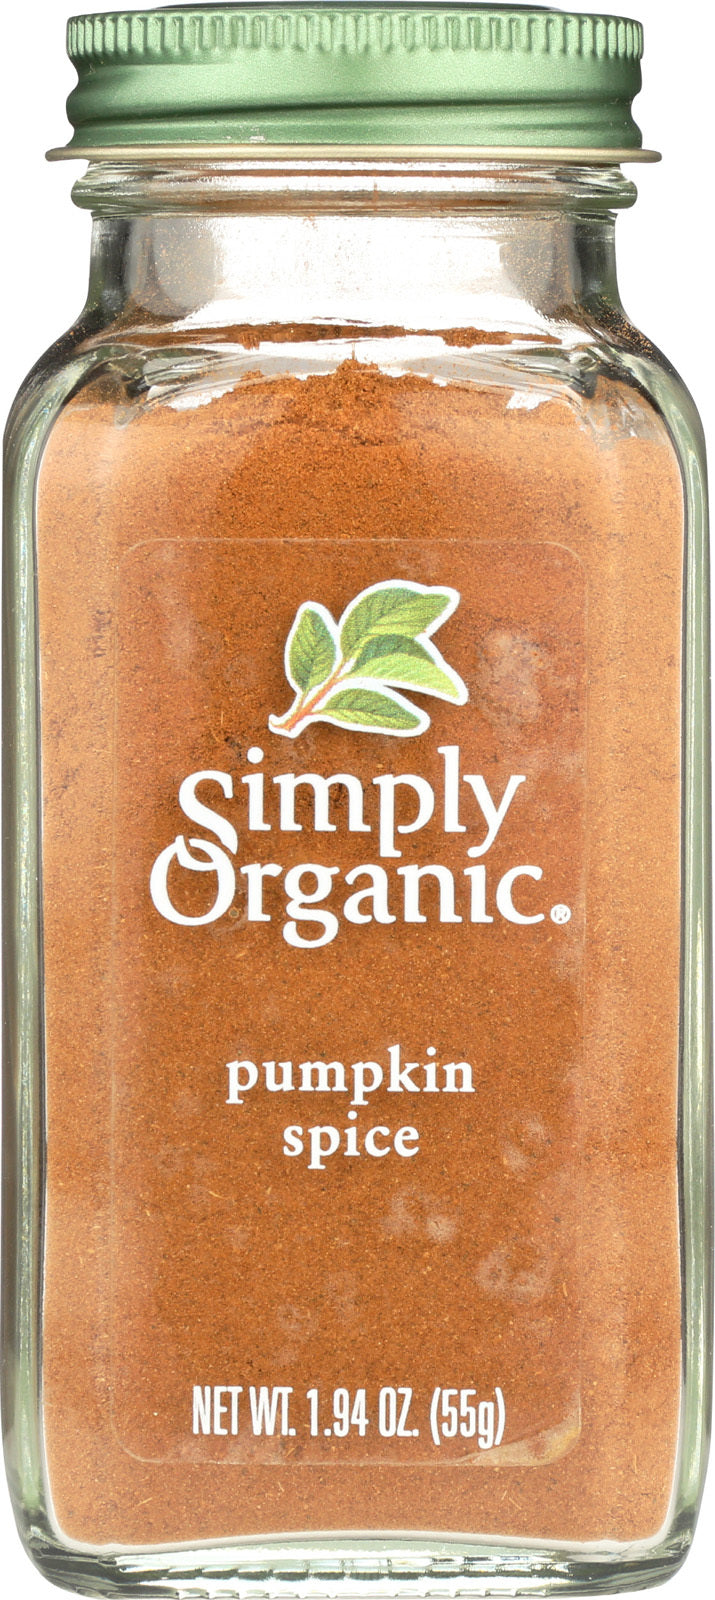 Simply Organic Pumpkin Spice - Case of 6 - 1.94 oz.